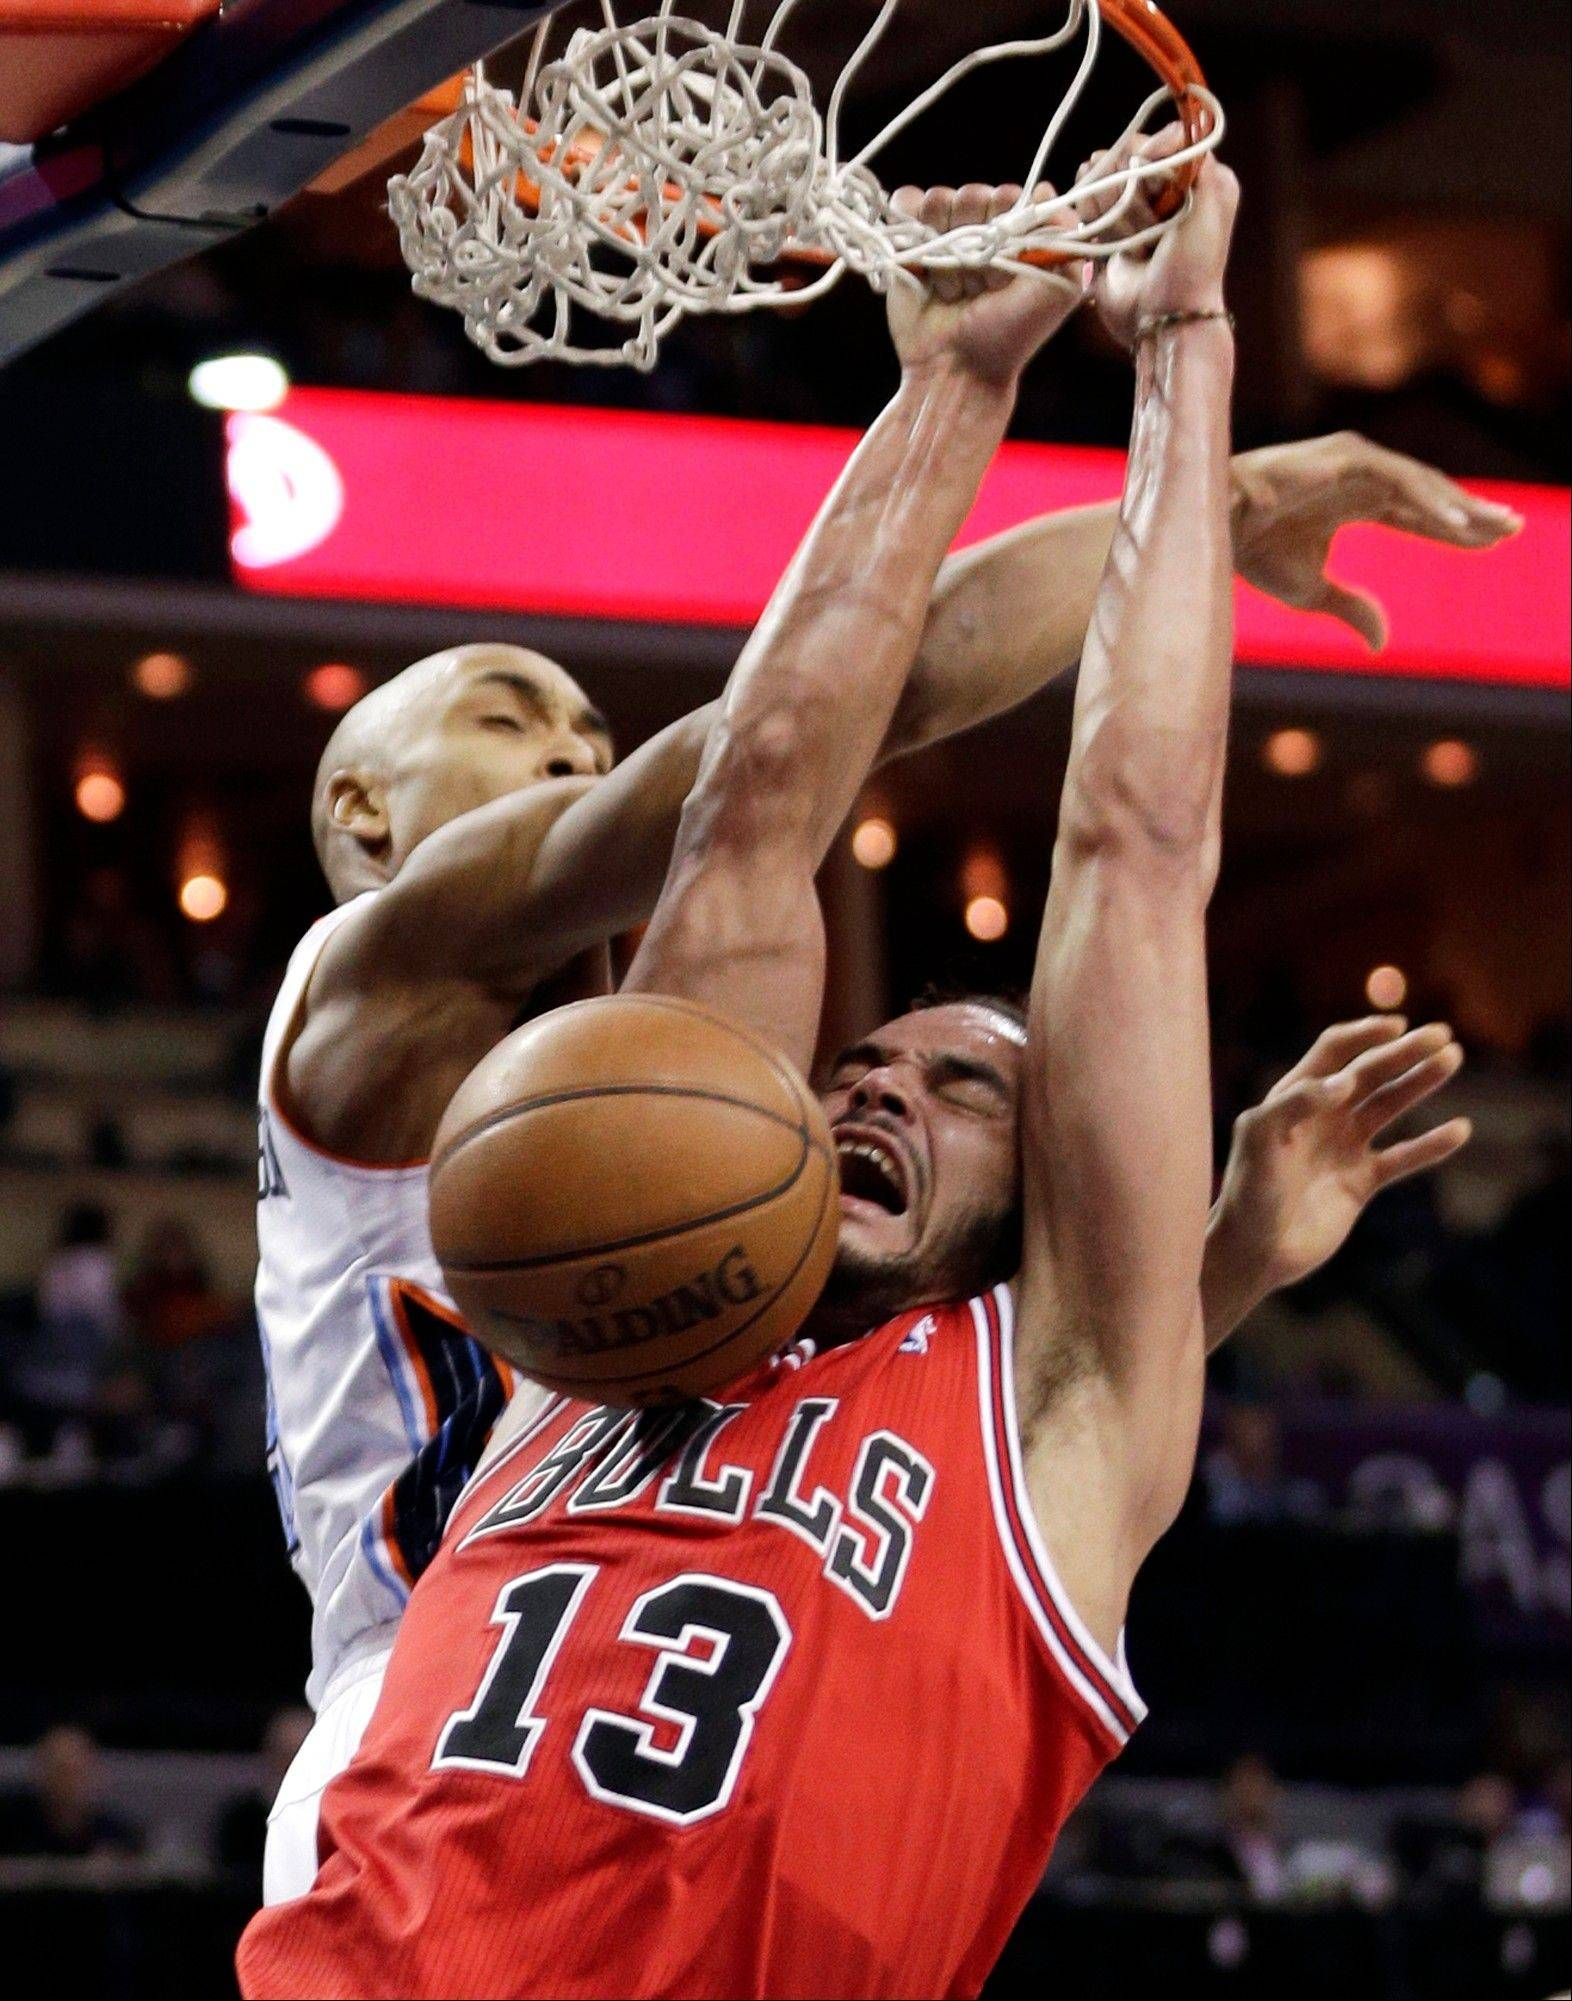 Bulls center Joakim Noah dunks against Charlotte's Gerald Henderson during the second half of Saturday's game. The Bulls won 89-87.